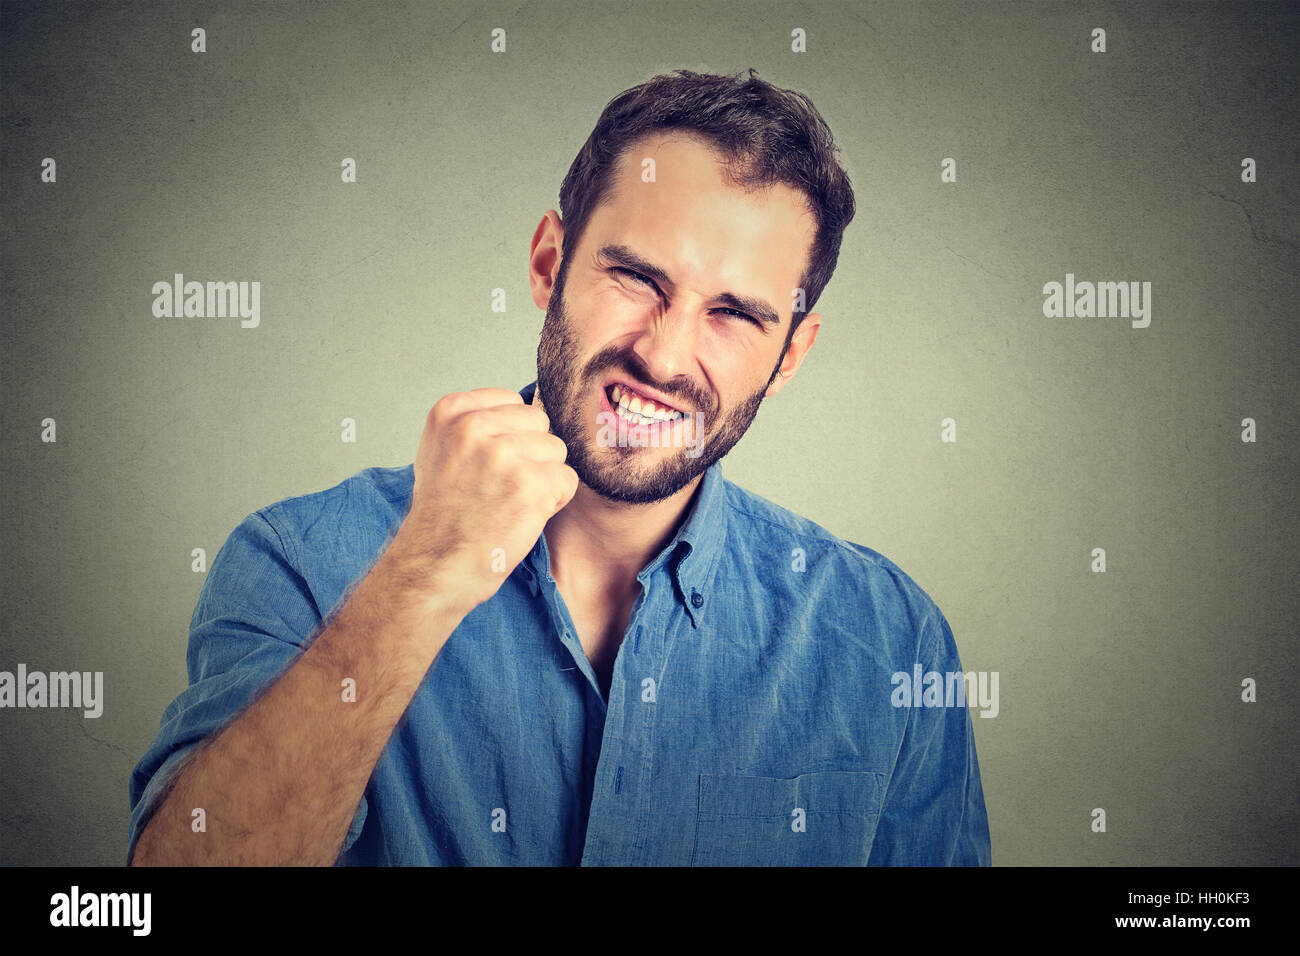 portrait of young angry man - Stock Image